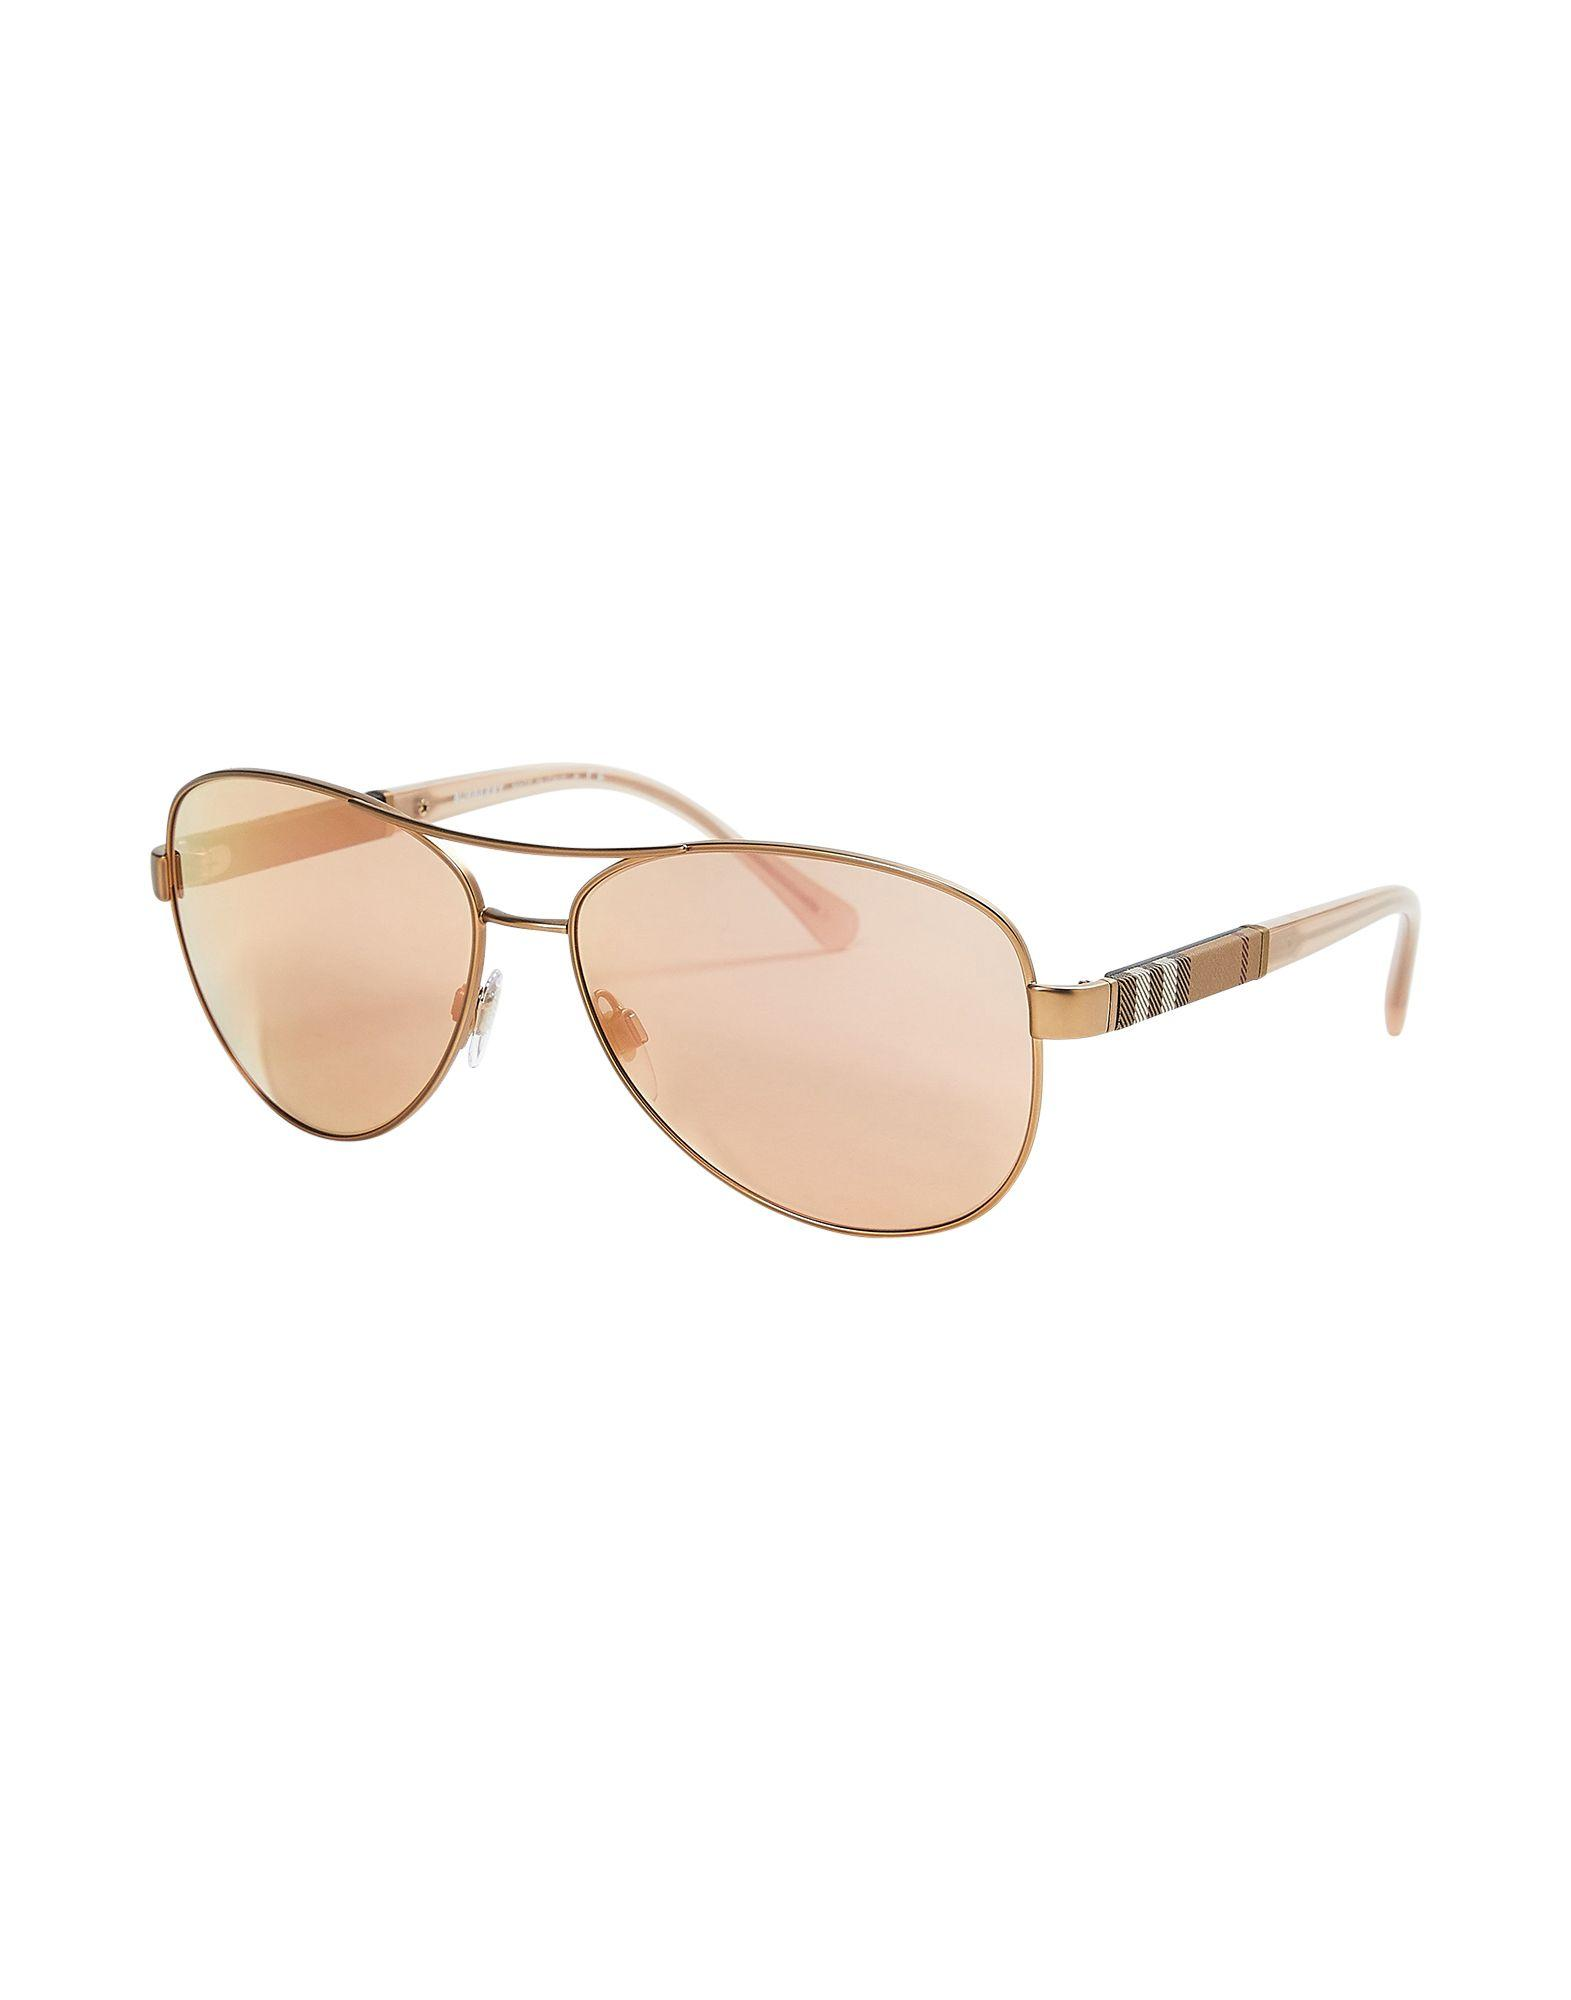 0999af66a2ab Lyst - Burberry Sunglasses in Metallic